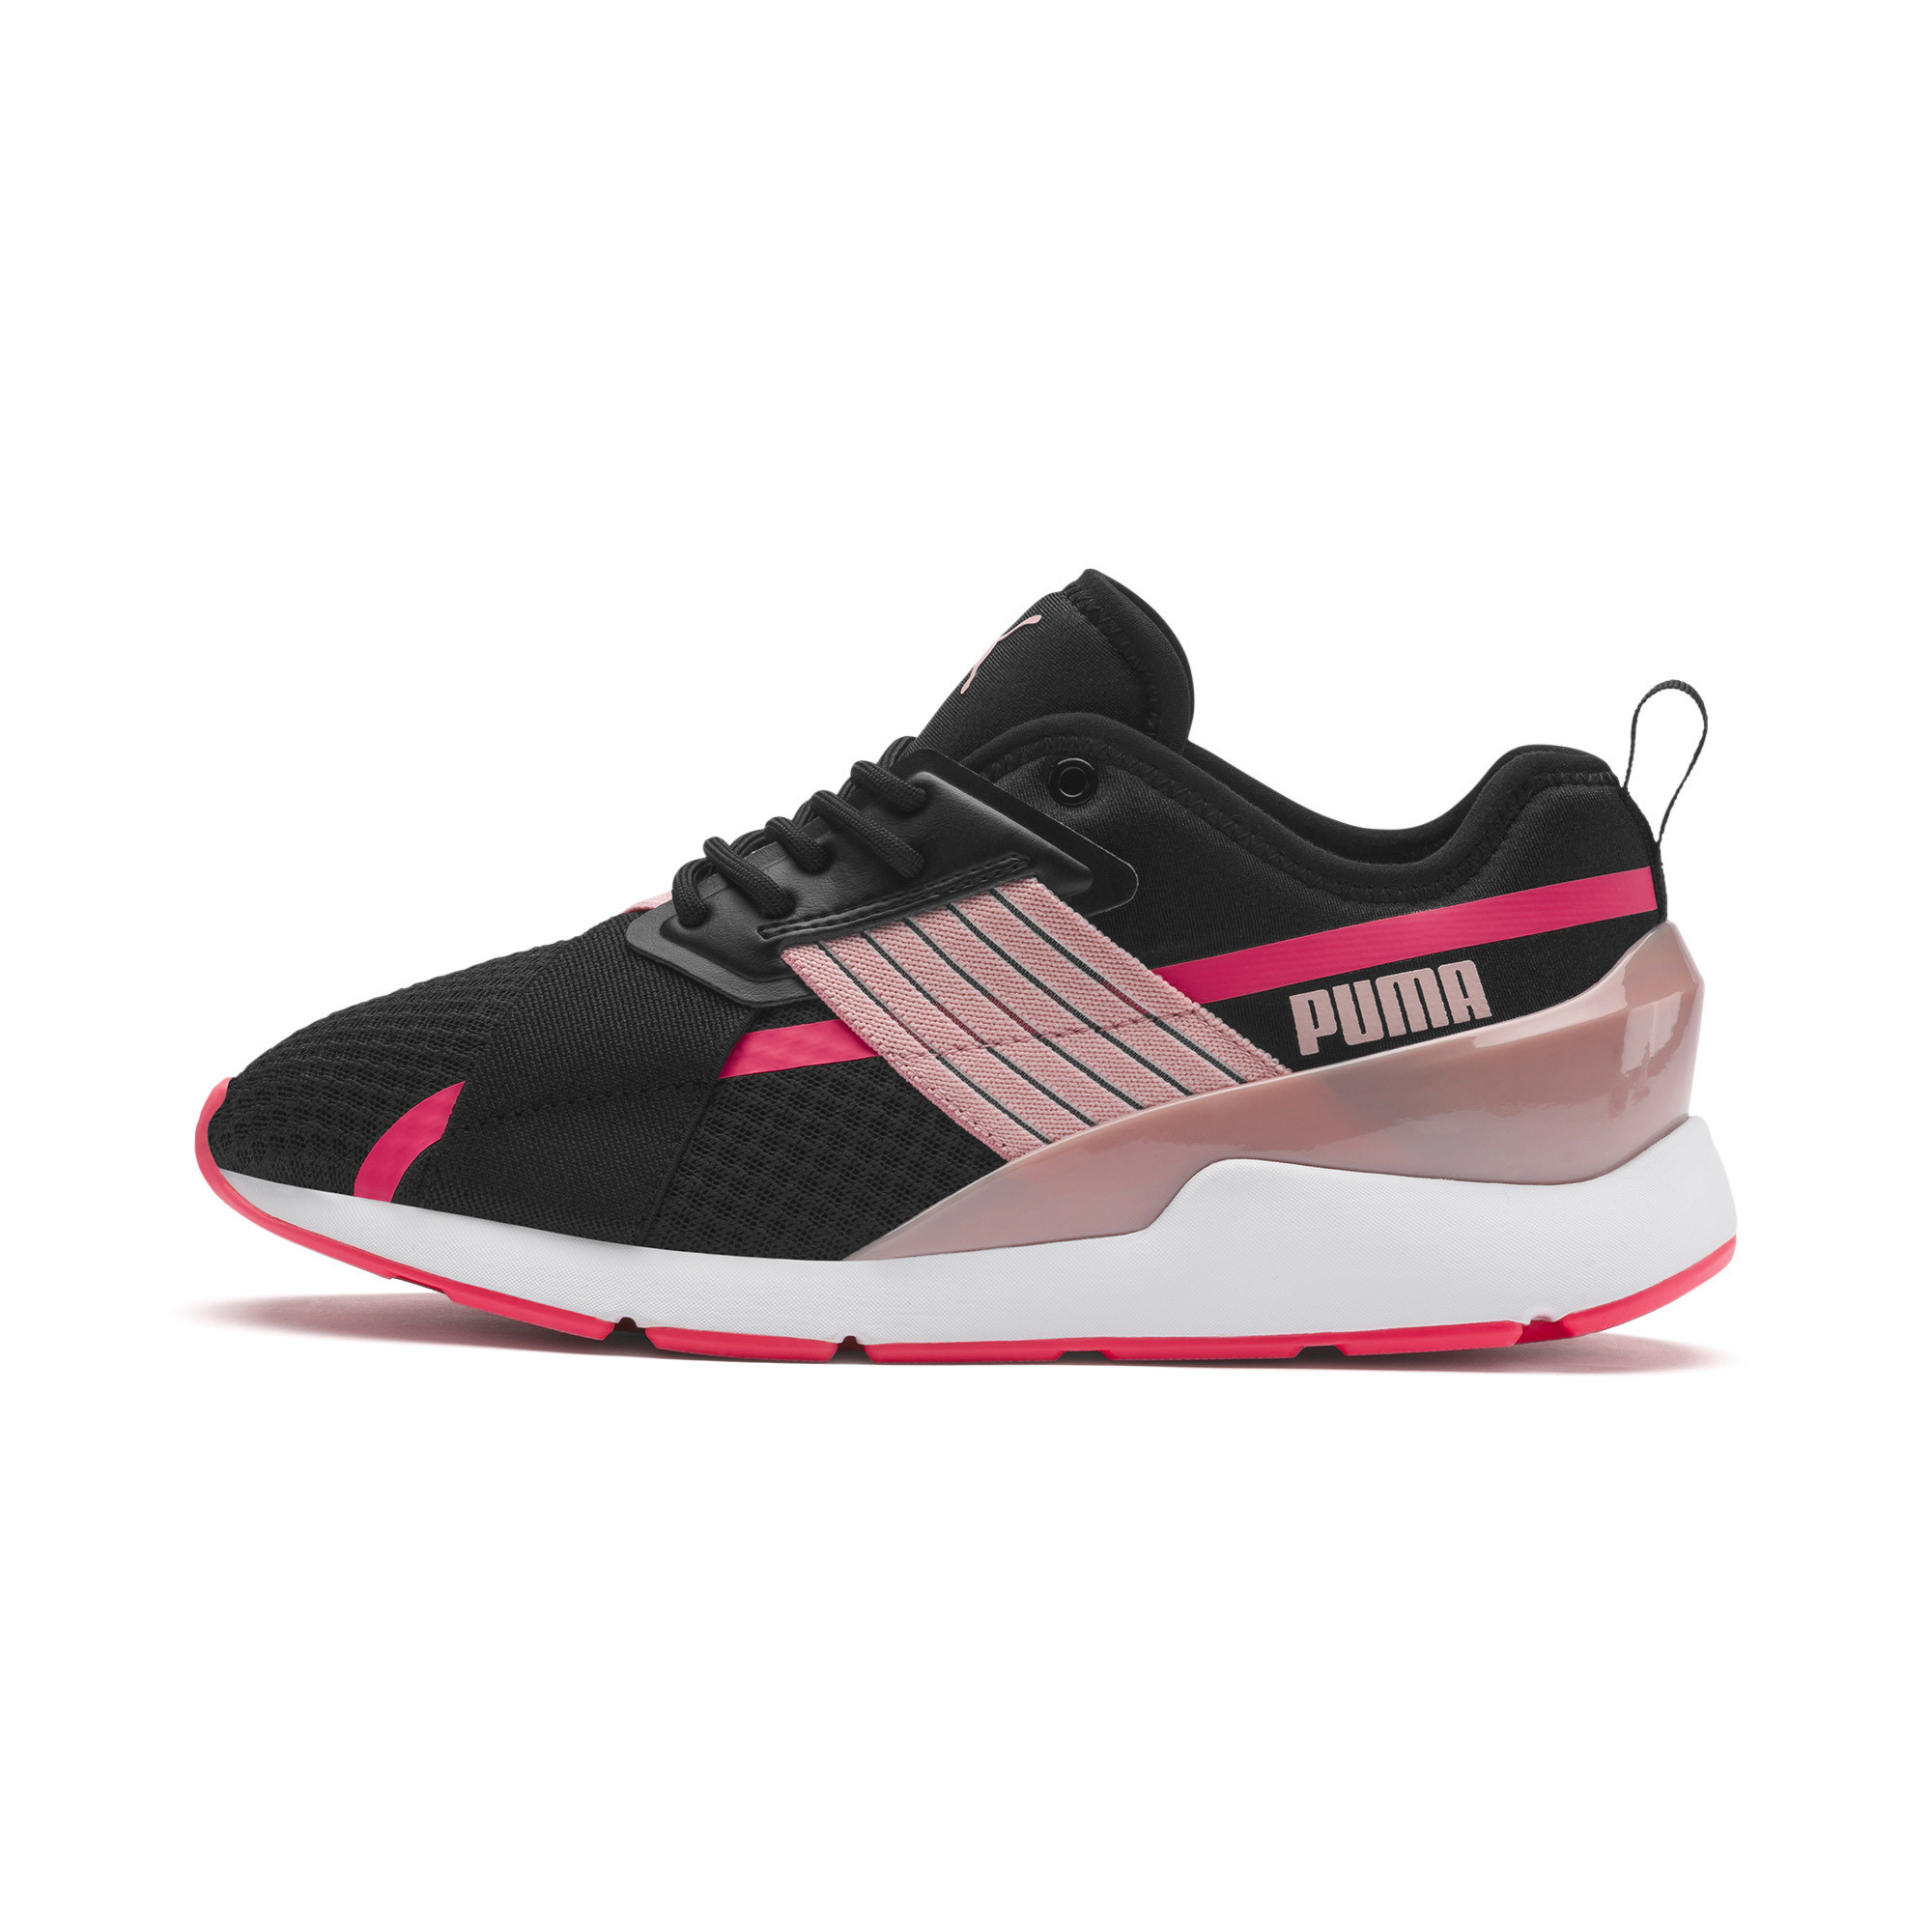 PUMA-Muse-X-2-Women-039-s-Sneakers-Women-Shoe-Evolution thumbnail 17